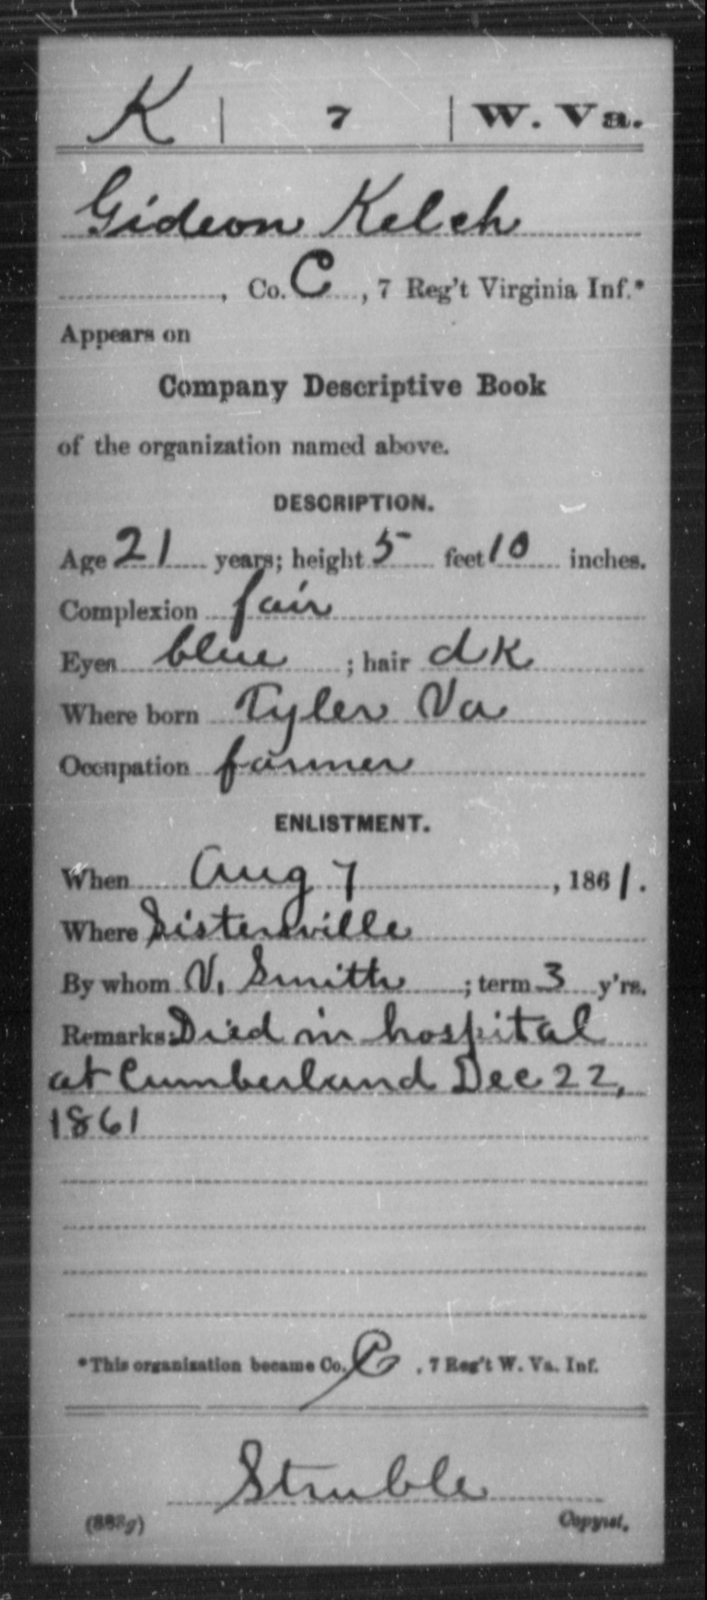 Kelch, Gideon - Age 21, Year: 1861 - Miscellaneous Card Abstracts of Records - West Virginia